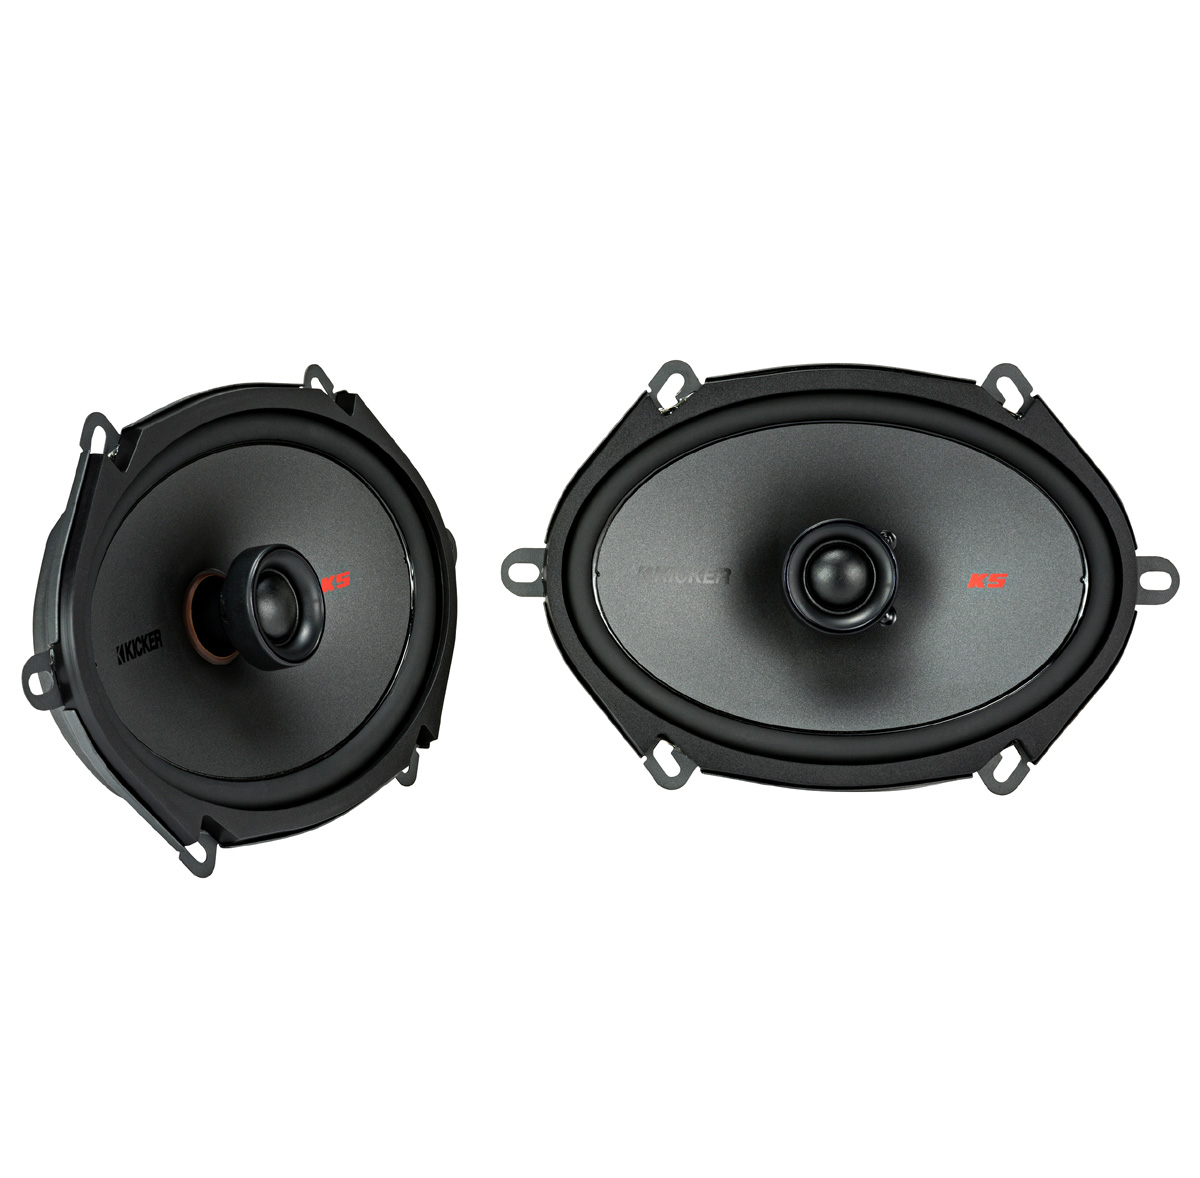 "KICKER 44KSC6804 6x8"" (160x200mm) Coax Spkrs w/.75""(20mm) tweeters, 4ohm, RoHS Compliant"